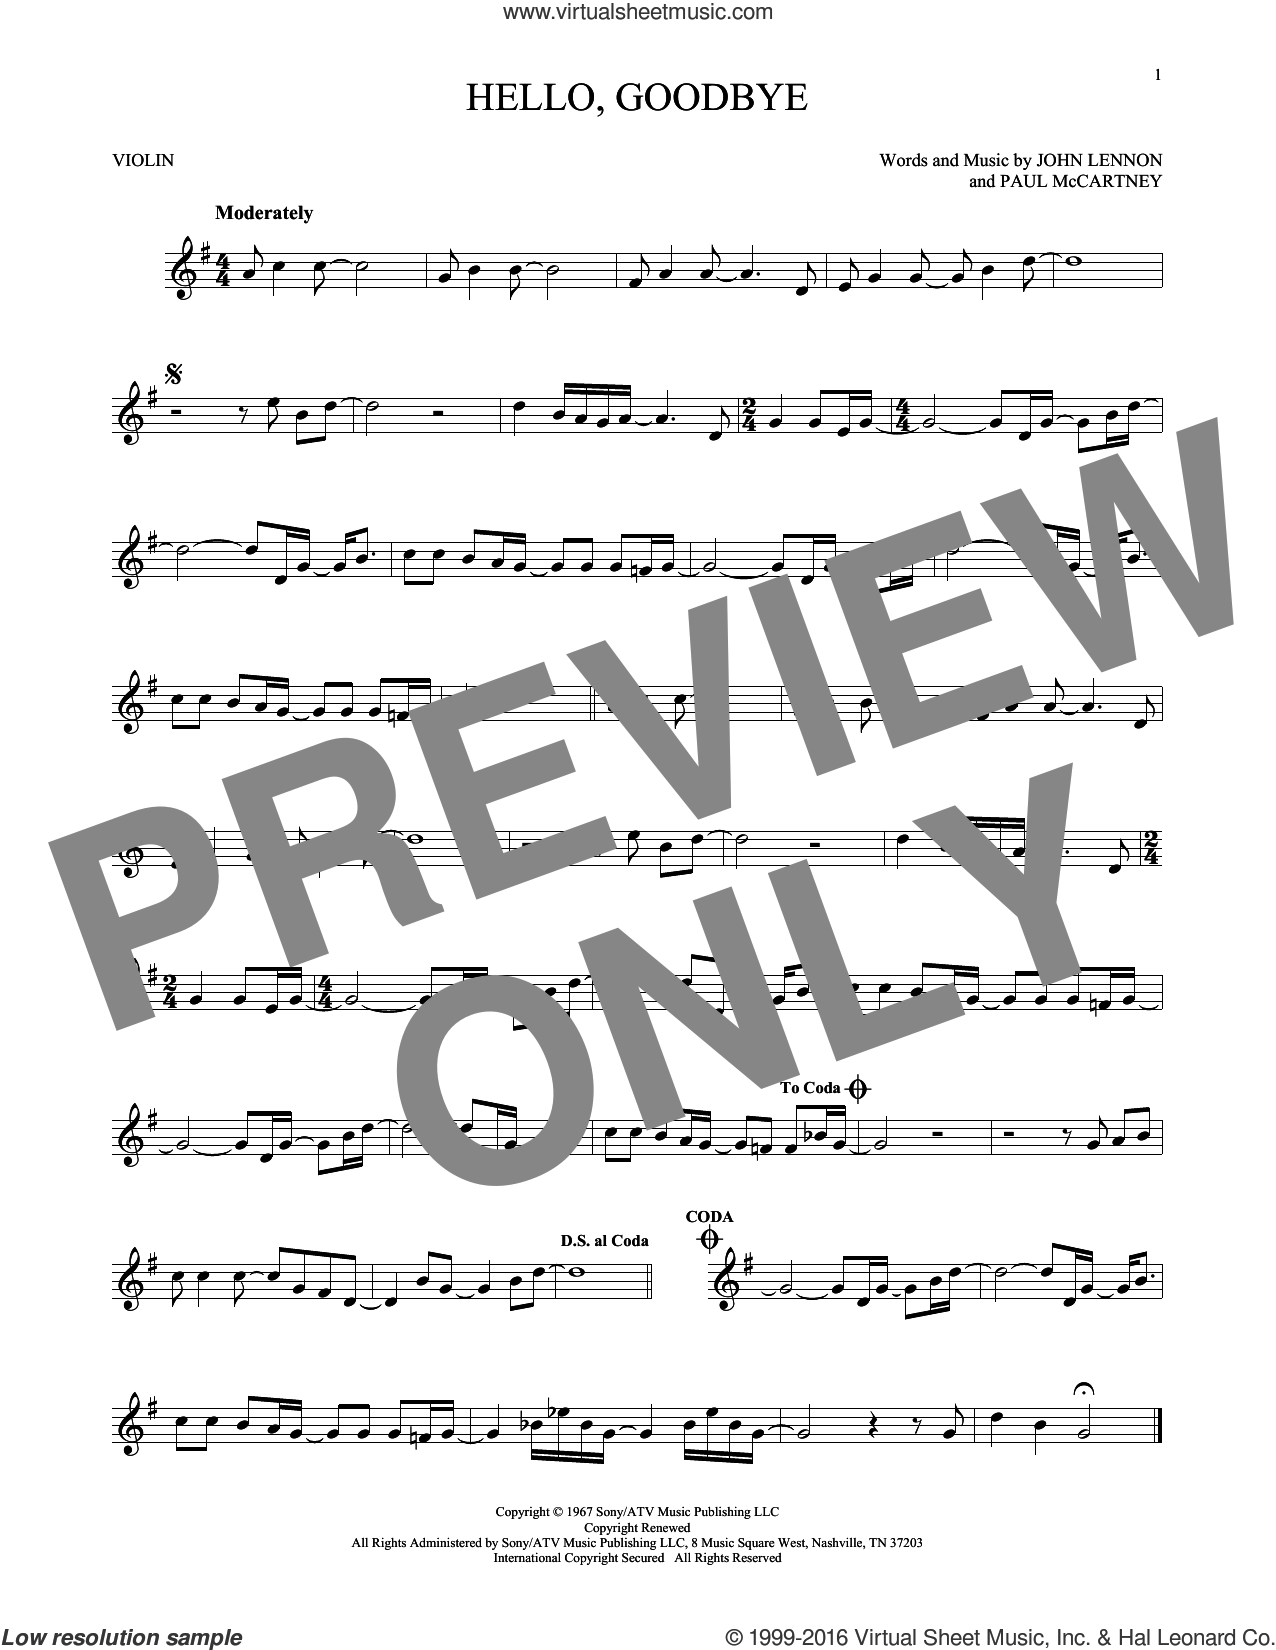 Hello, Goodbye sheet music for violin solo by The Beatles, John Lennon and Paul McCartney, intermediate skill level